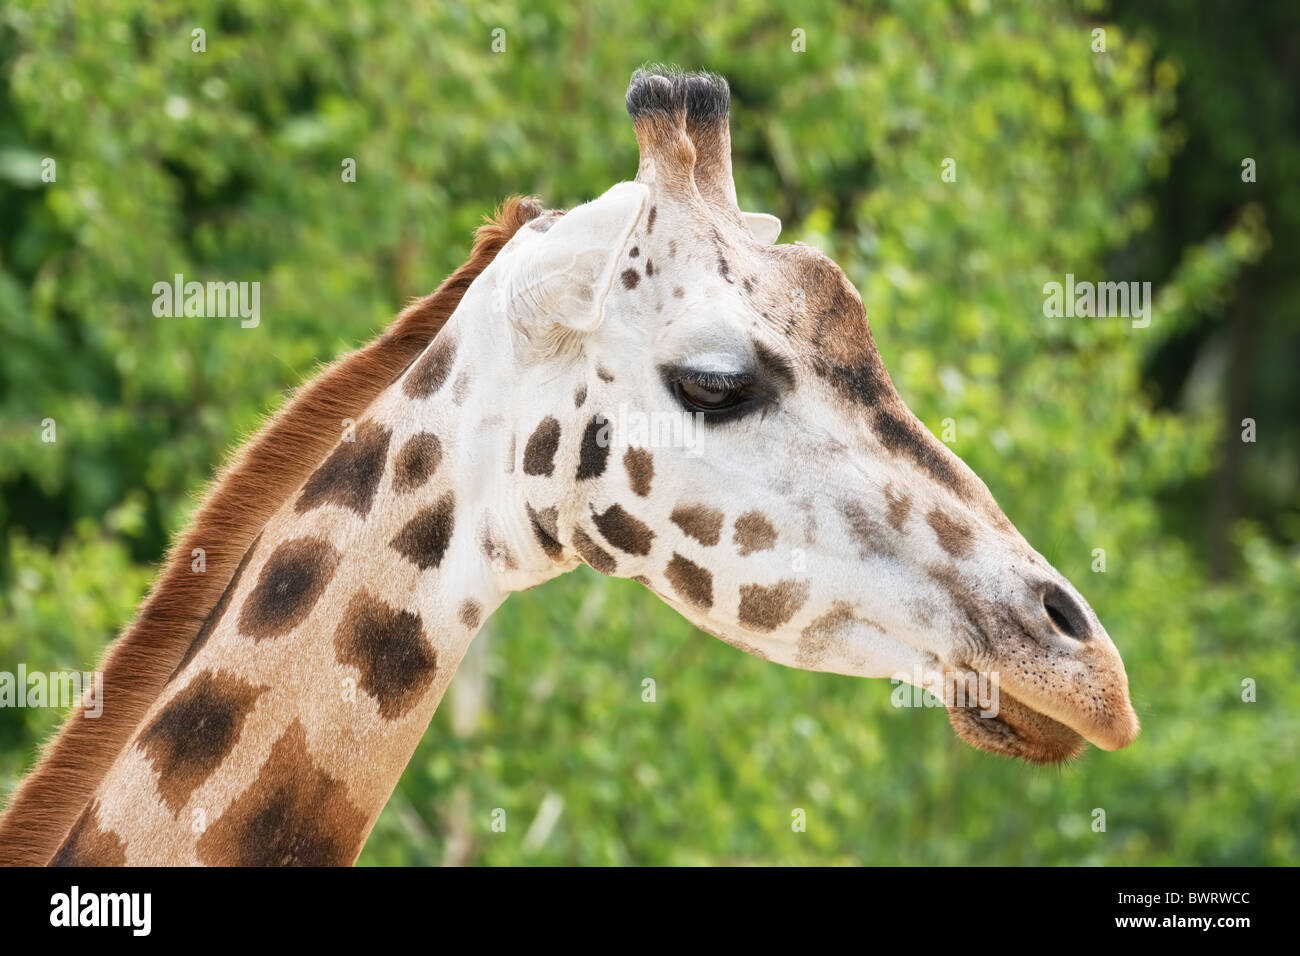 giraffe head close up side view stock photo royalty free image